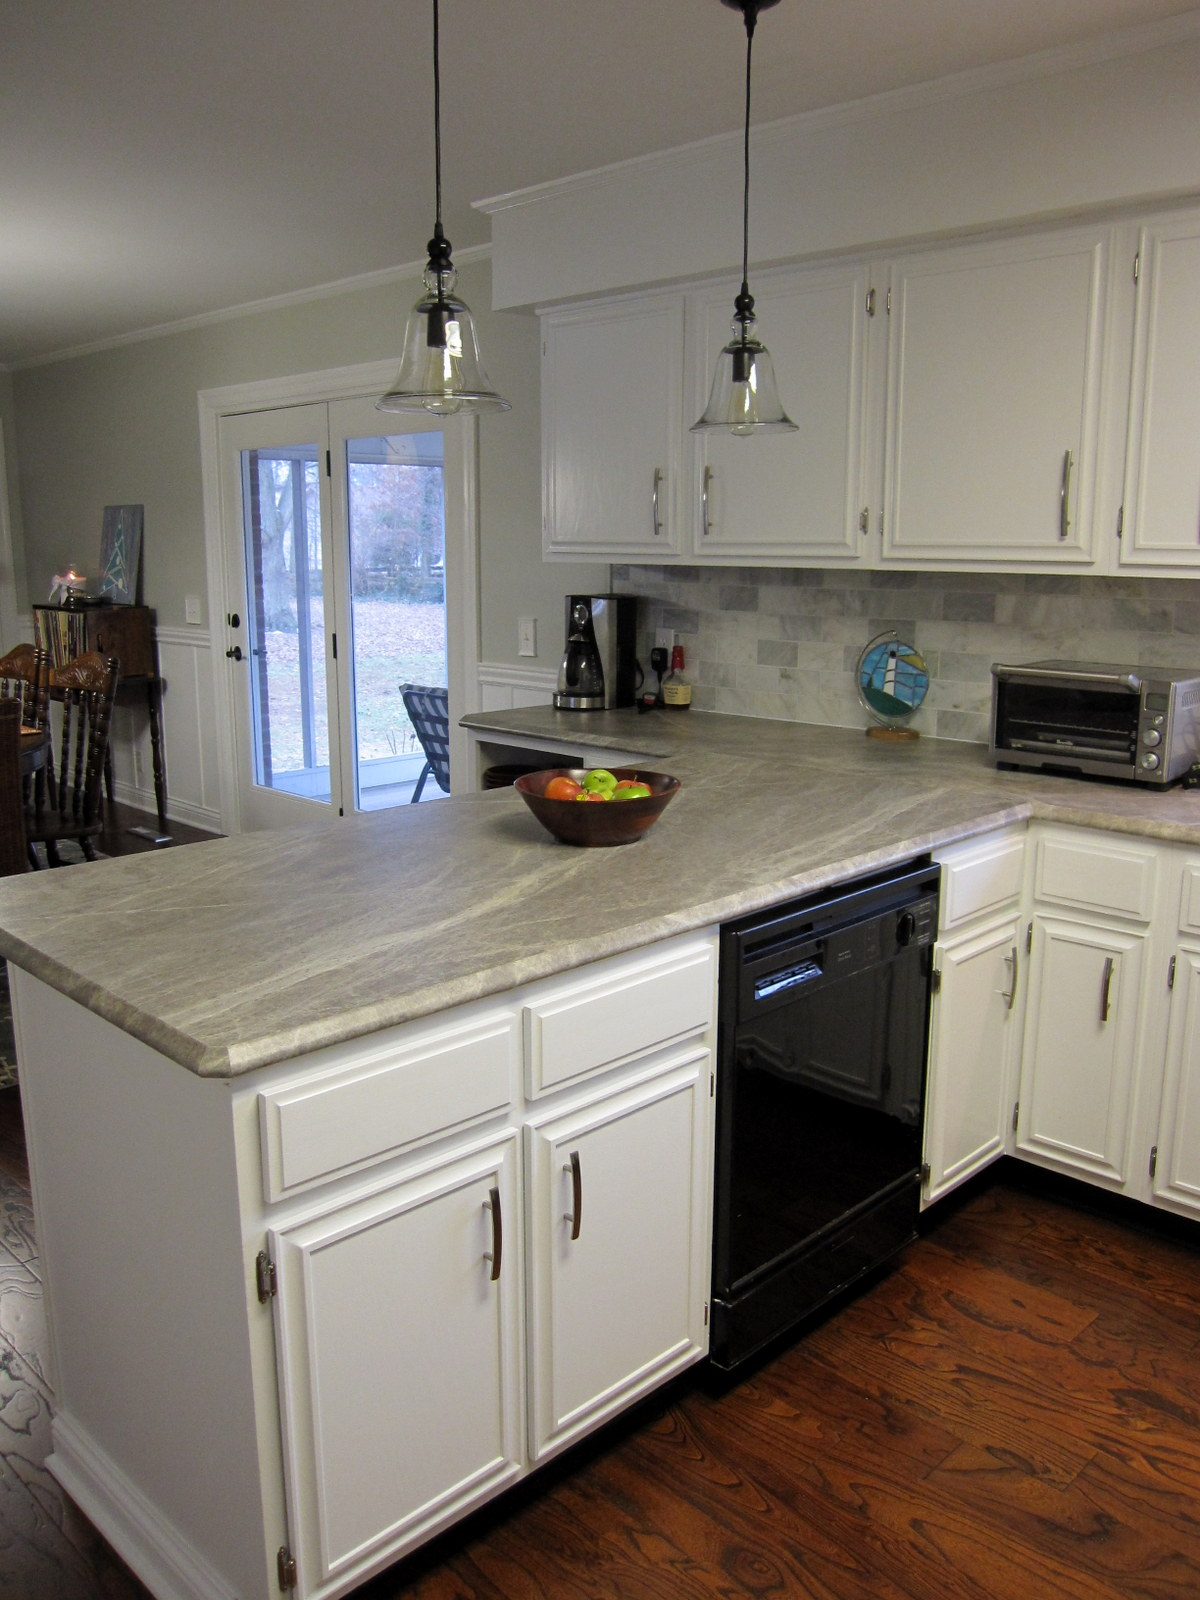 Charmant New Soapstone Style Laminate Countertops